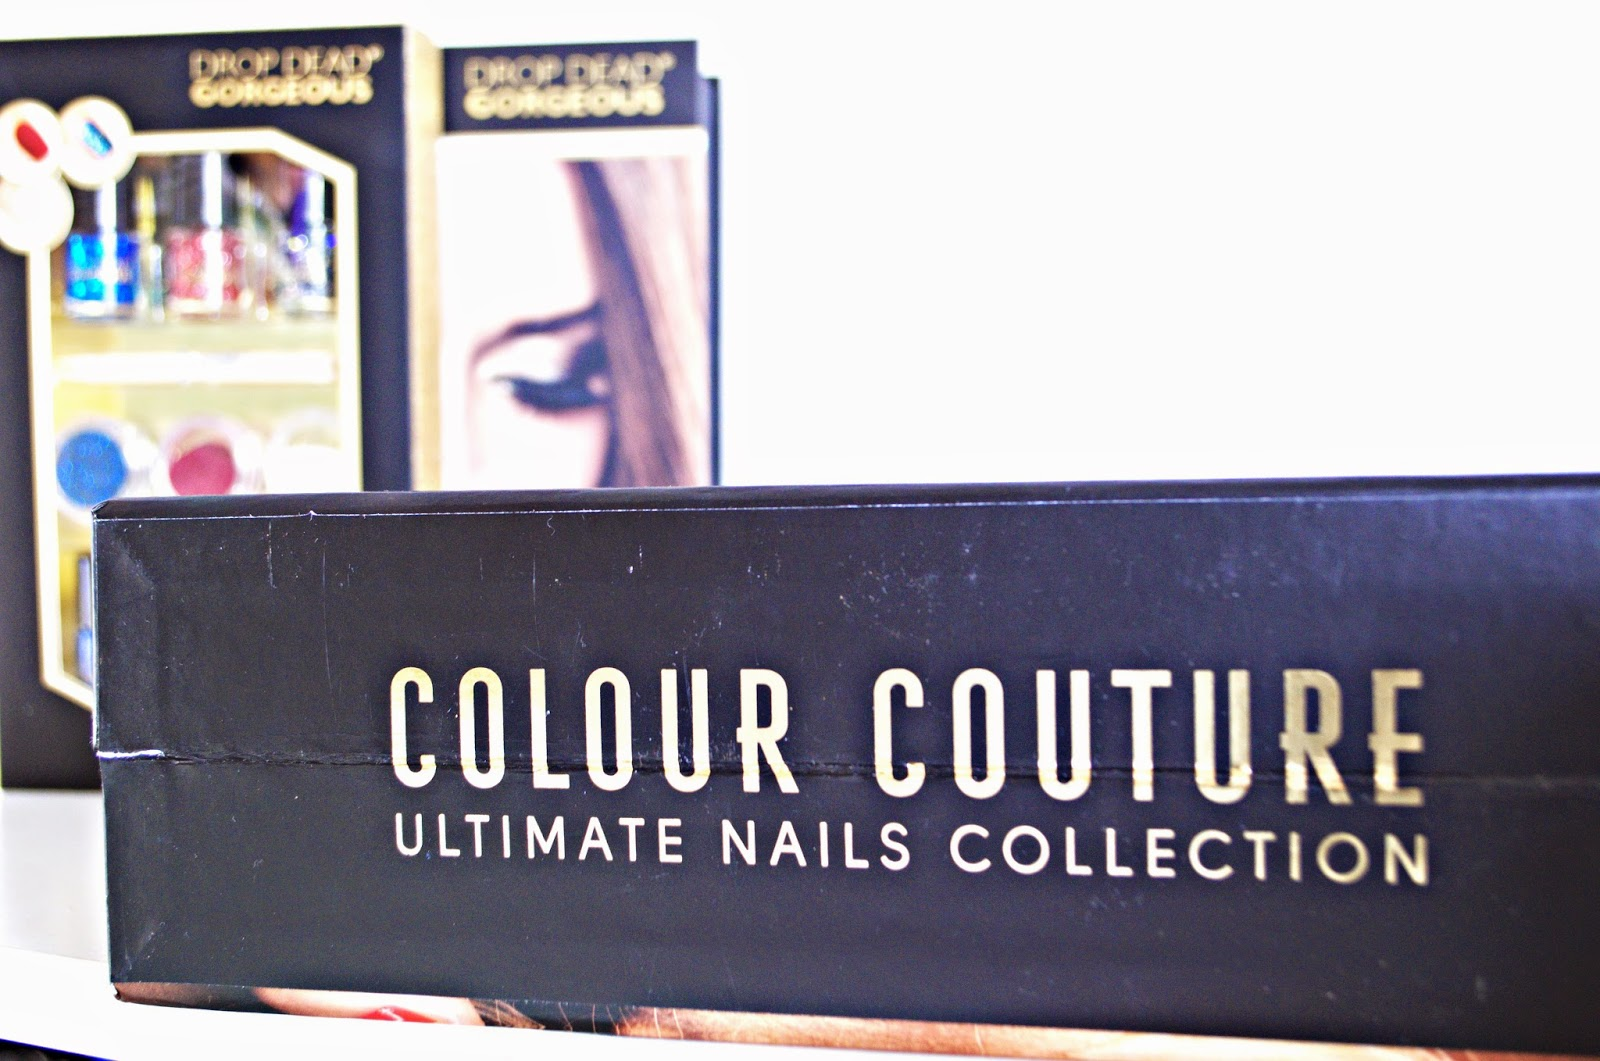 Colour Couture Ultimate Nails Collection. Christmas Gift Ideas